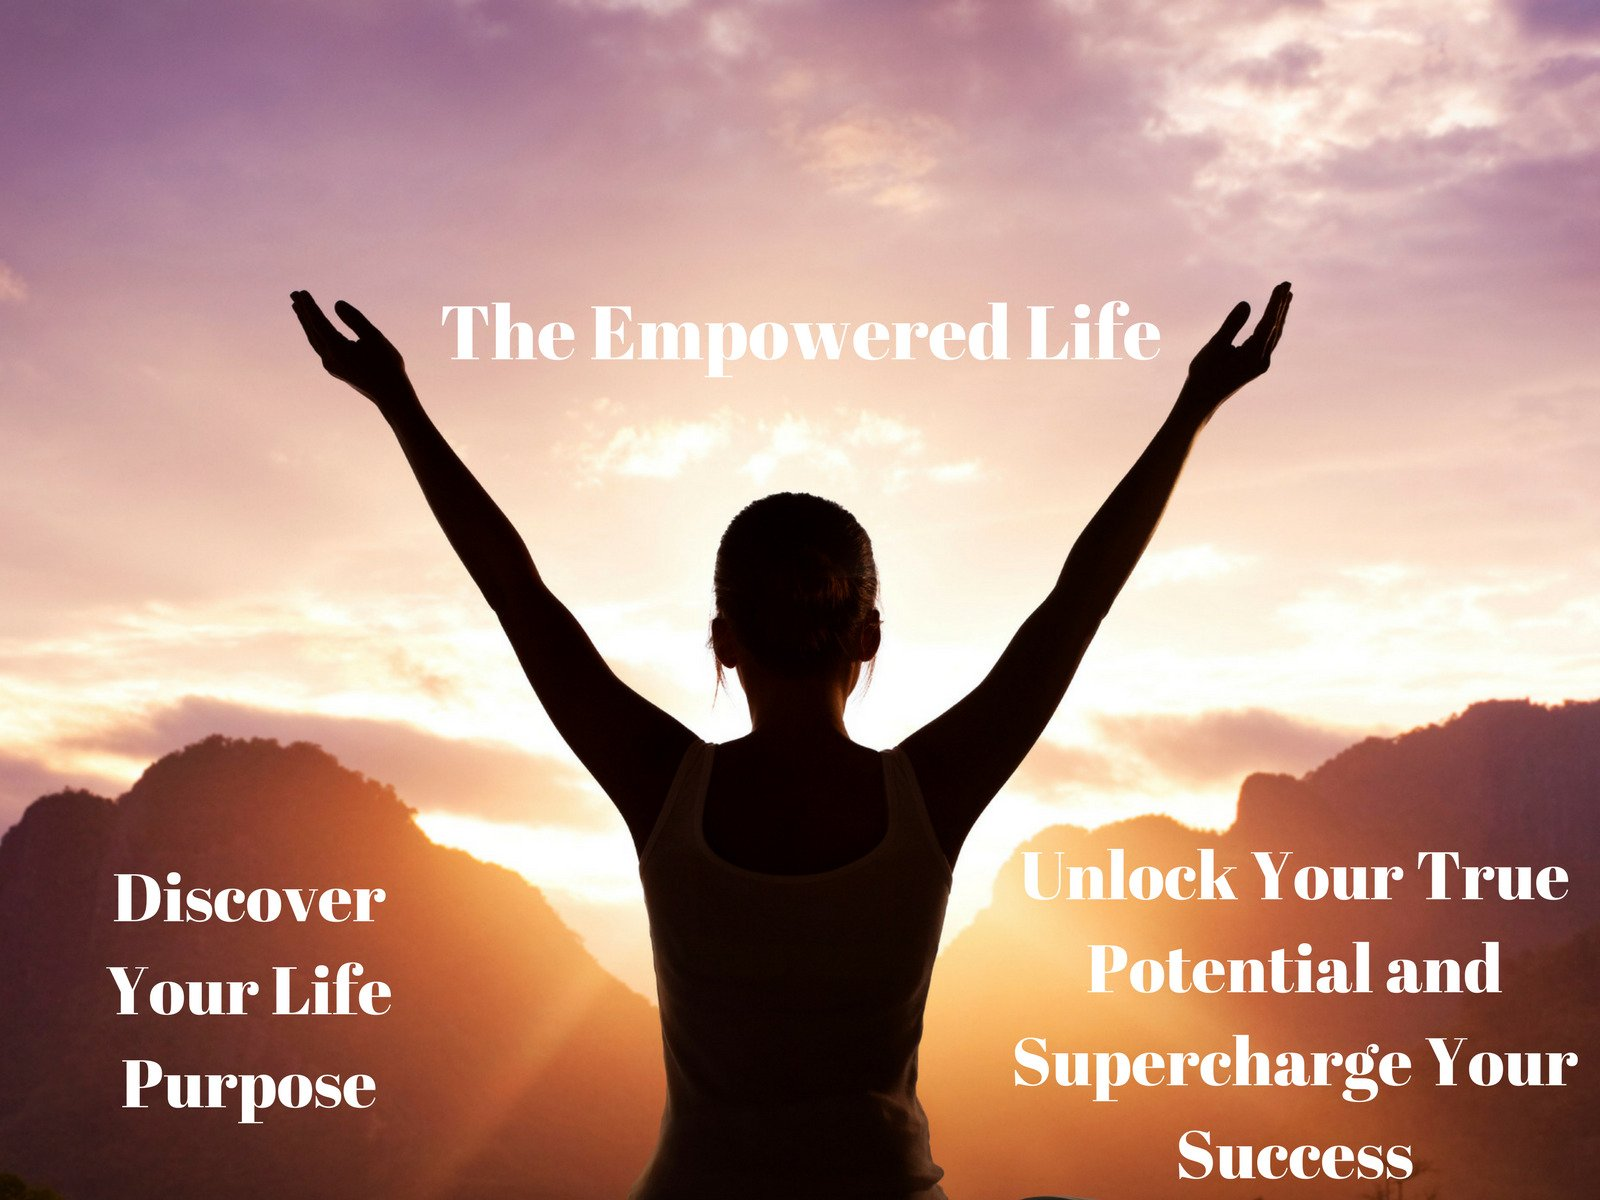 The Empowered Life: Discover Your Life Purpose. Unlock Your True Potential and Supercharge Your Success! - Season 1